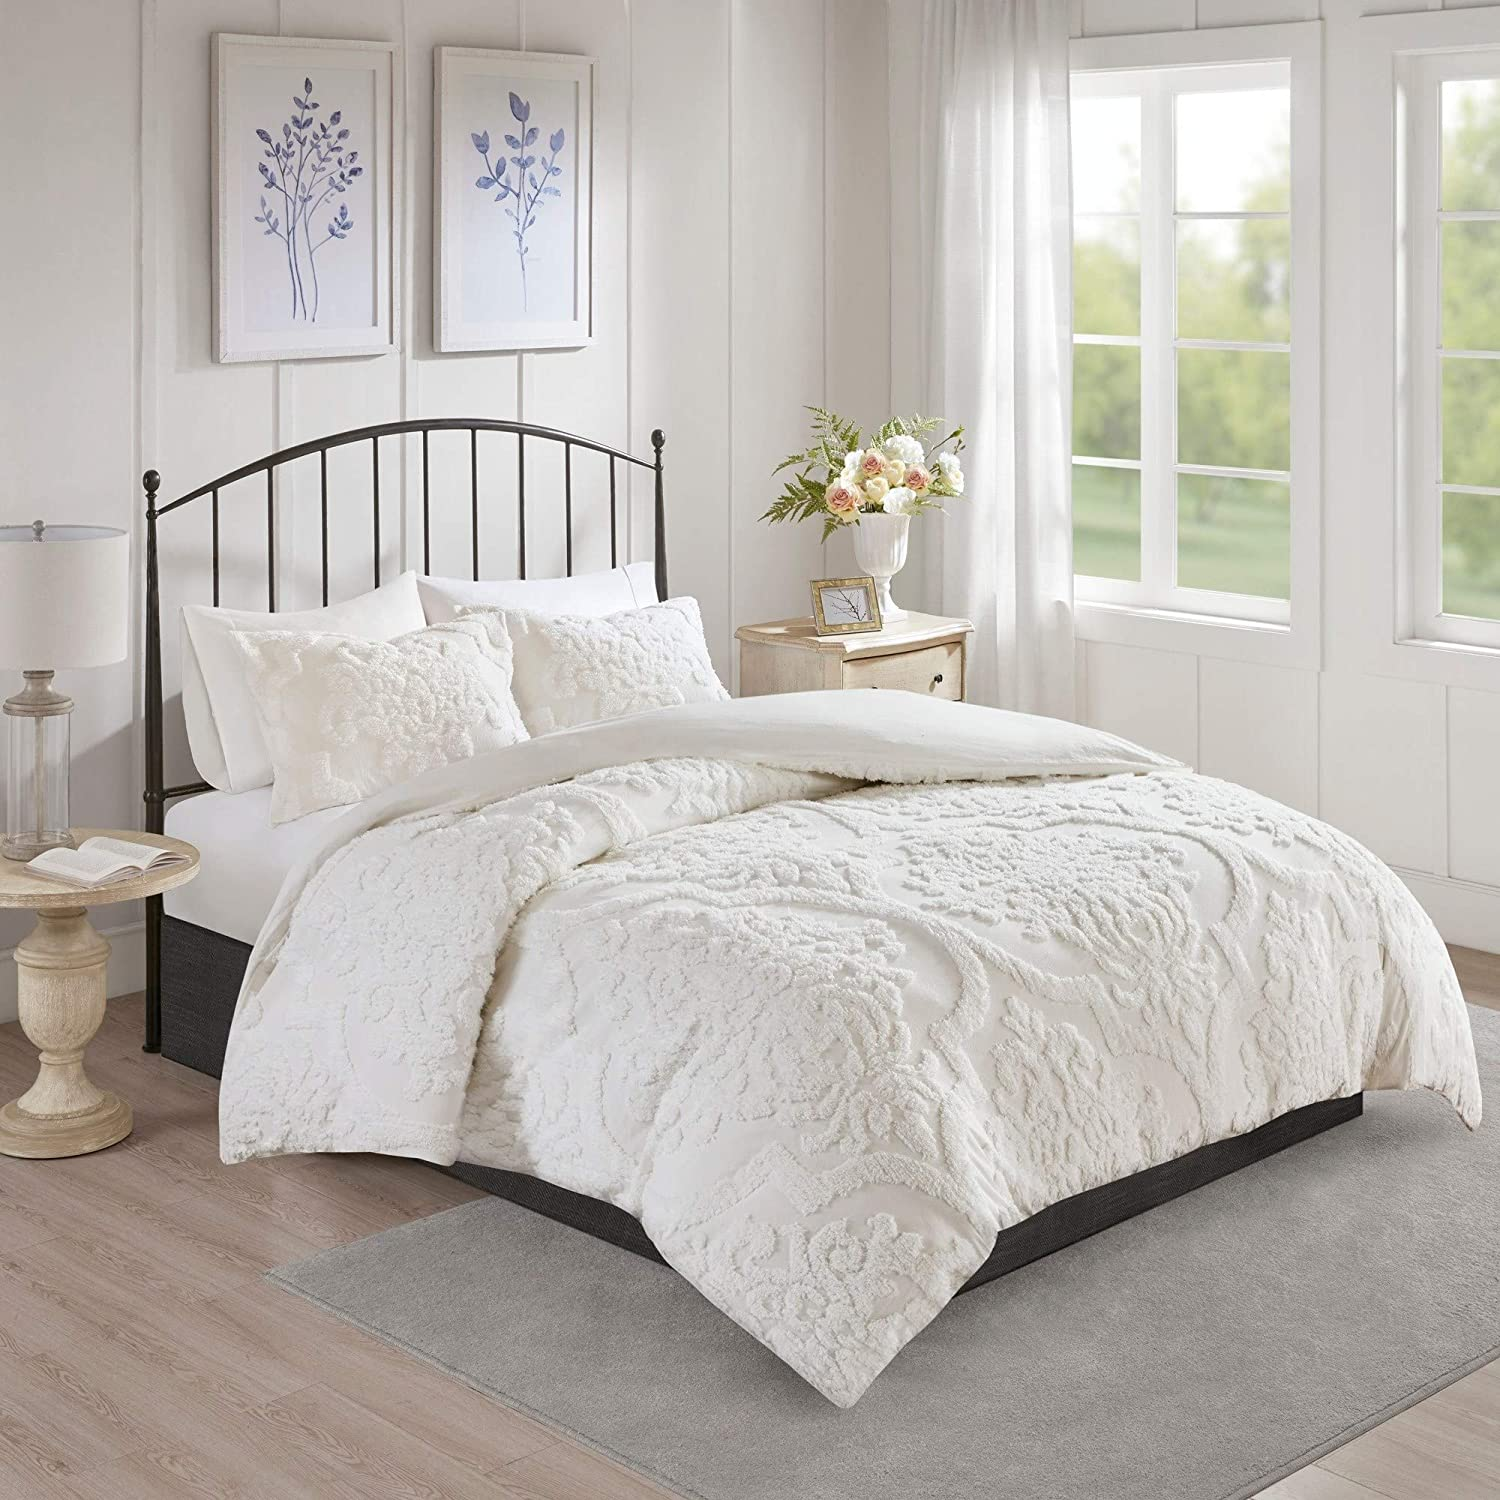 MISC 3 Piece White Max 45% OFF Tufted Popular products Chenille King Cover Duvet Set Cal